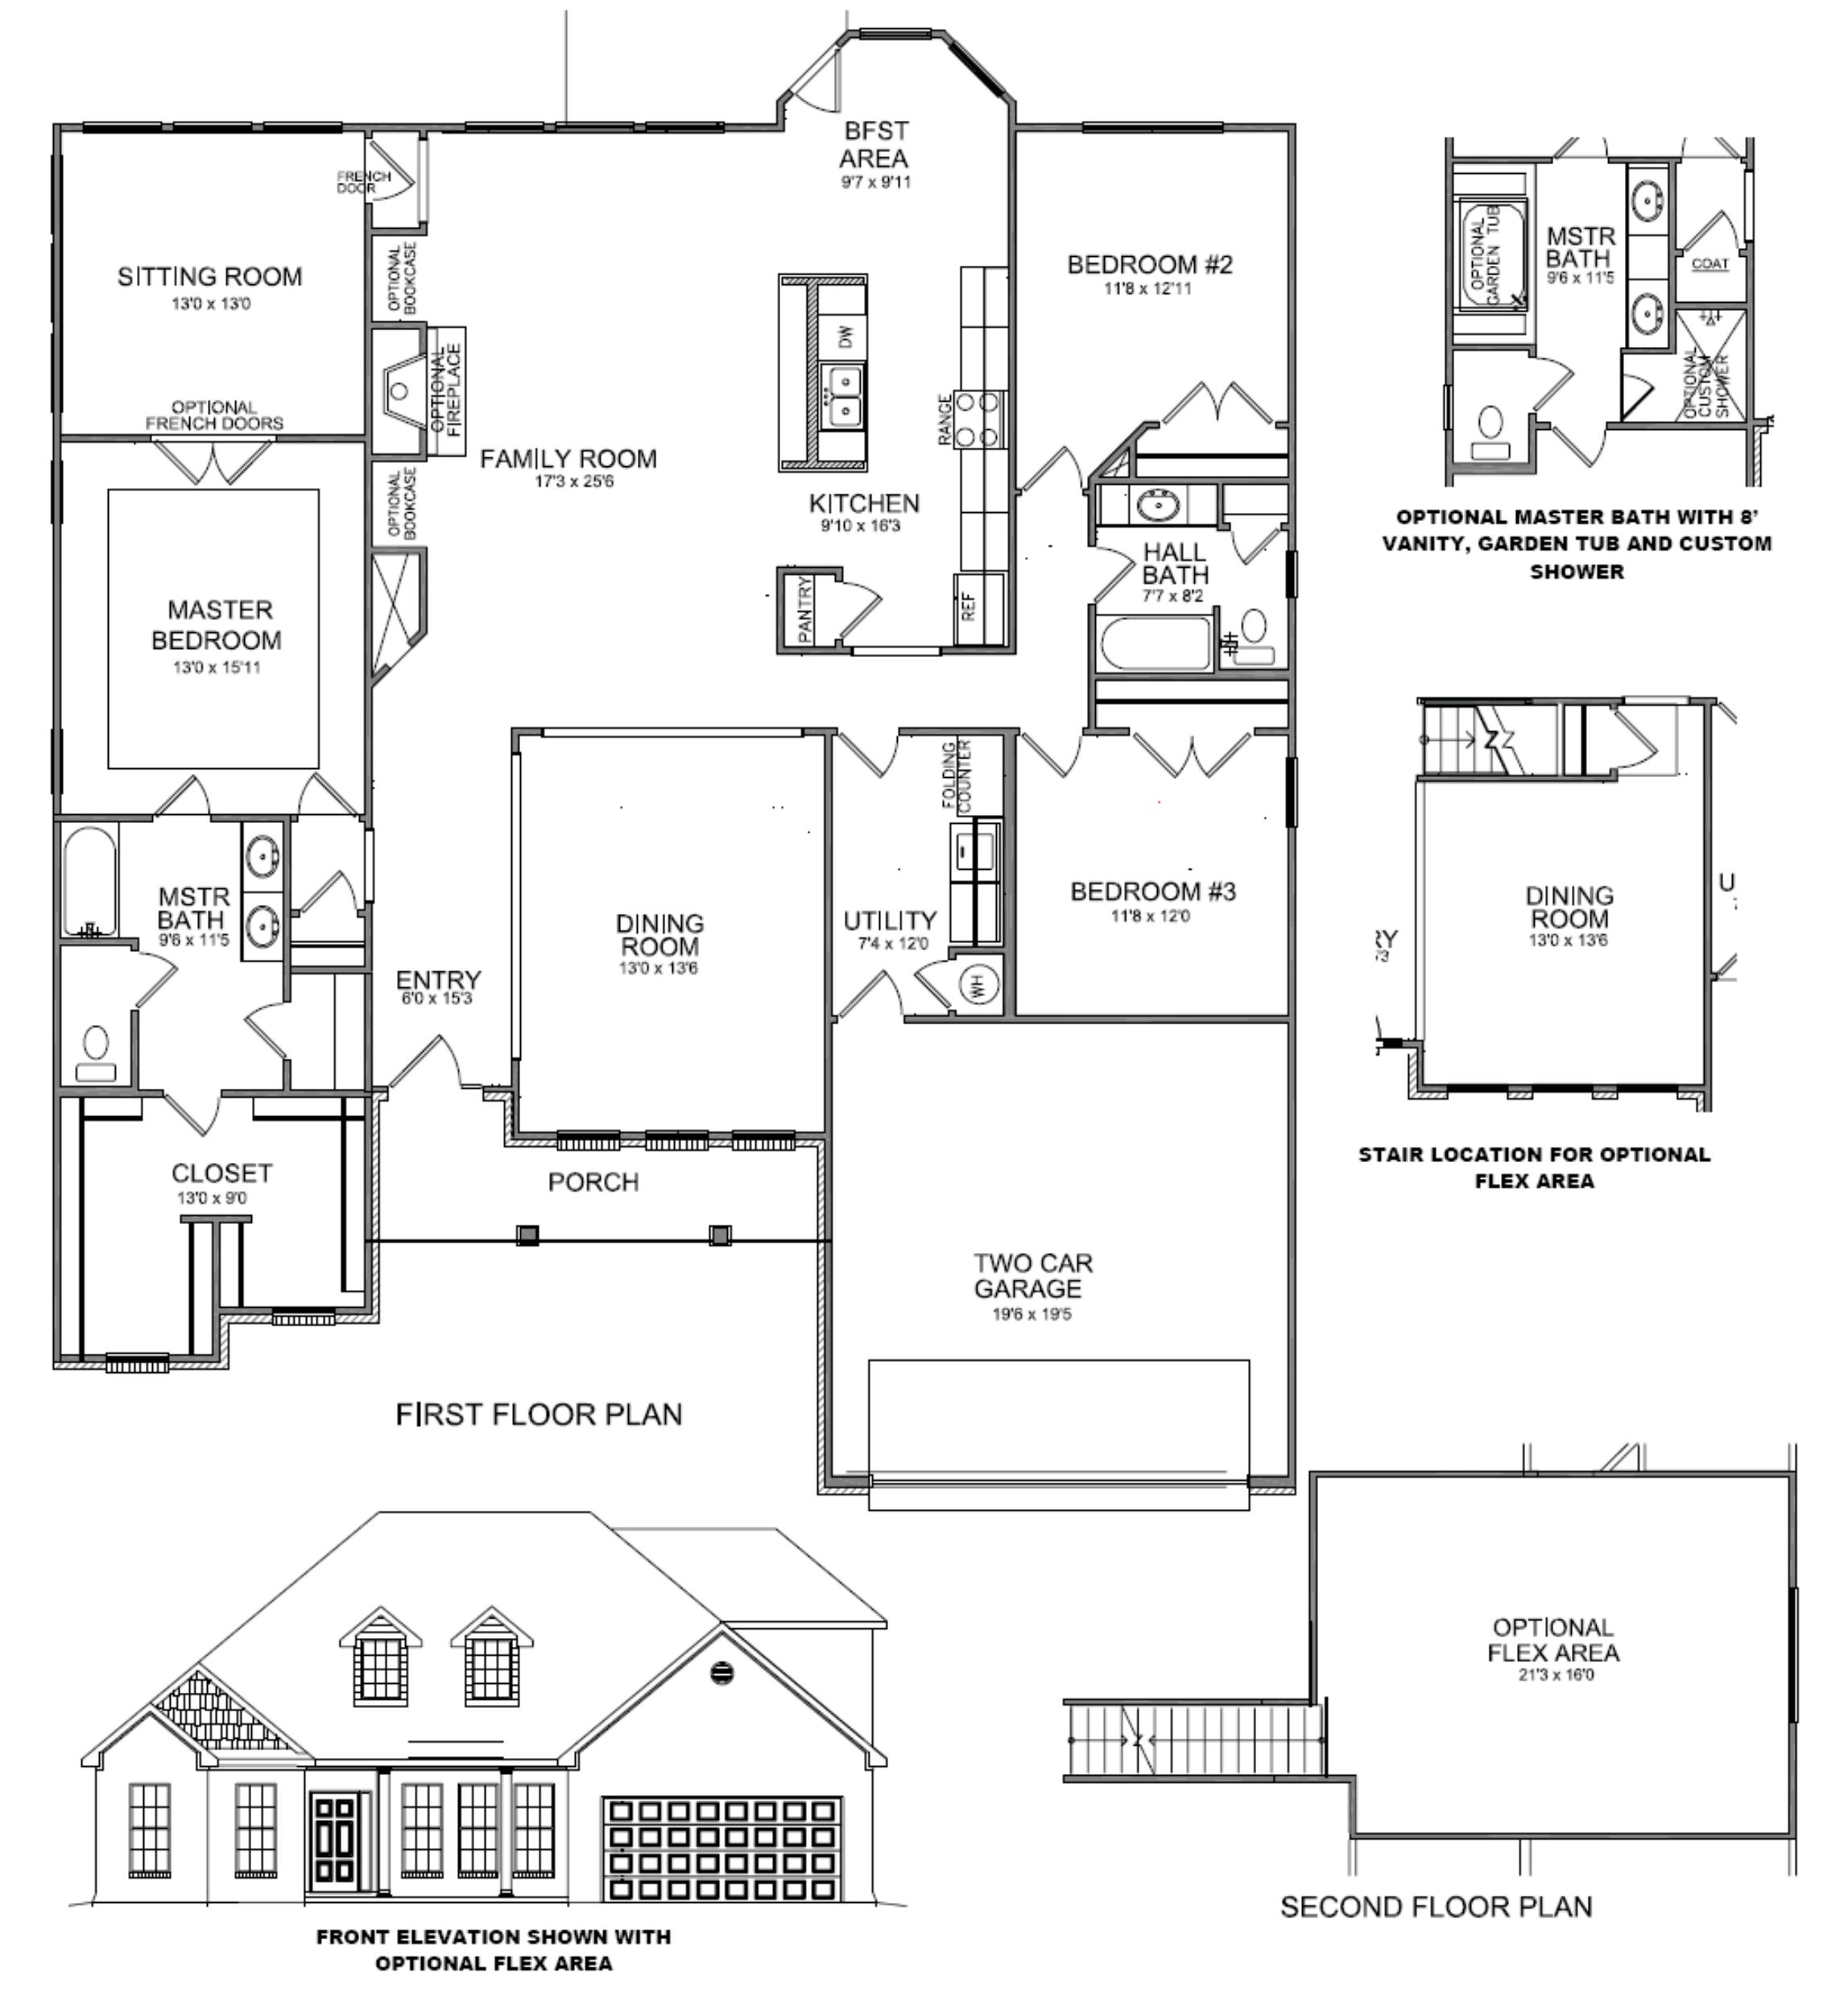 Master Bedroom Floor Plans Master Bedroom Floor Plan 1076 Homes Design Inspiration The